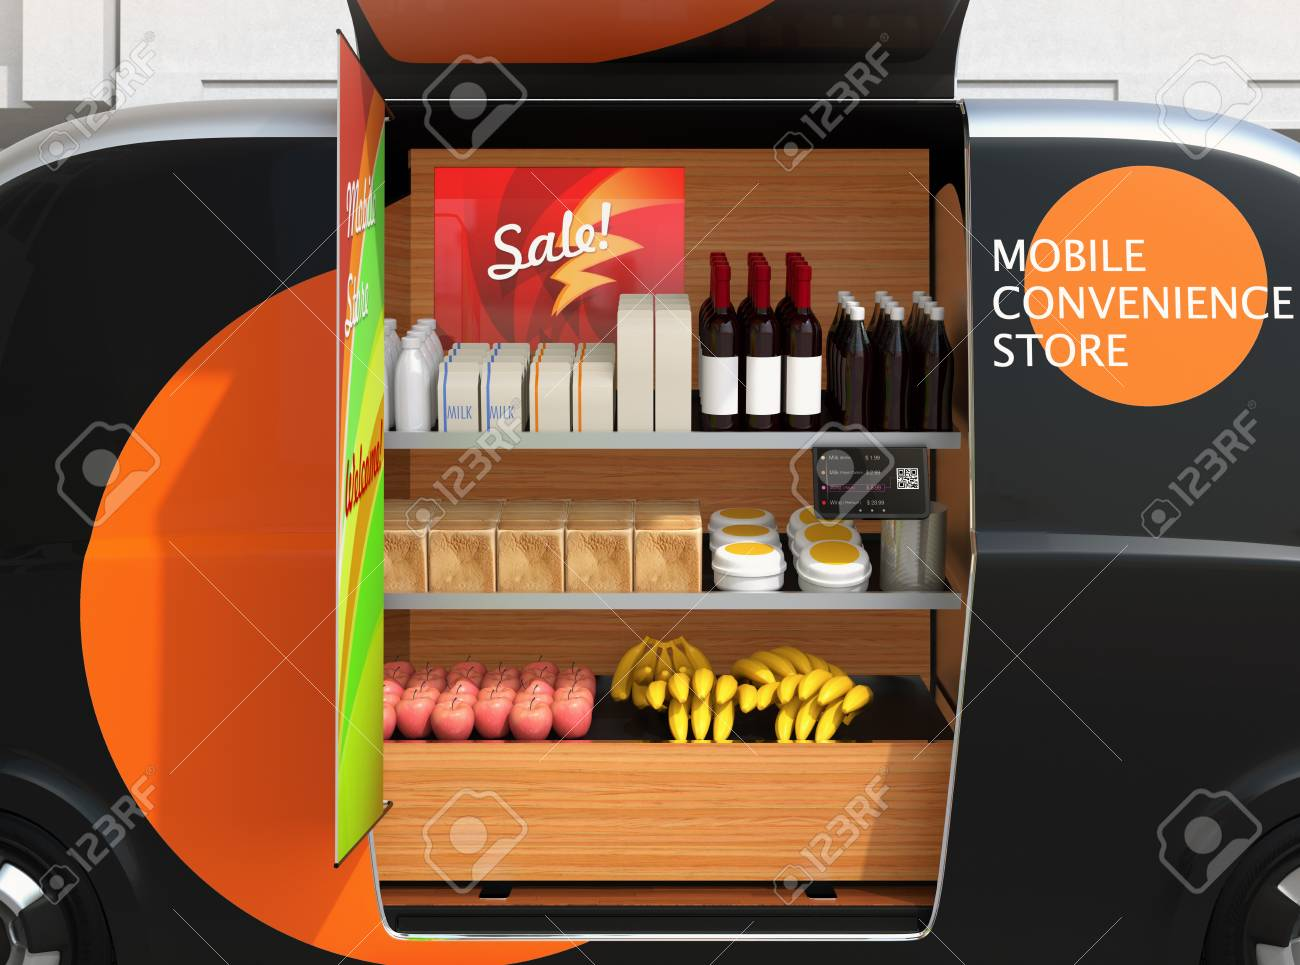 Close-up View Of Vending Car's Shelves Promotion Screen, Foods,